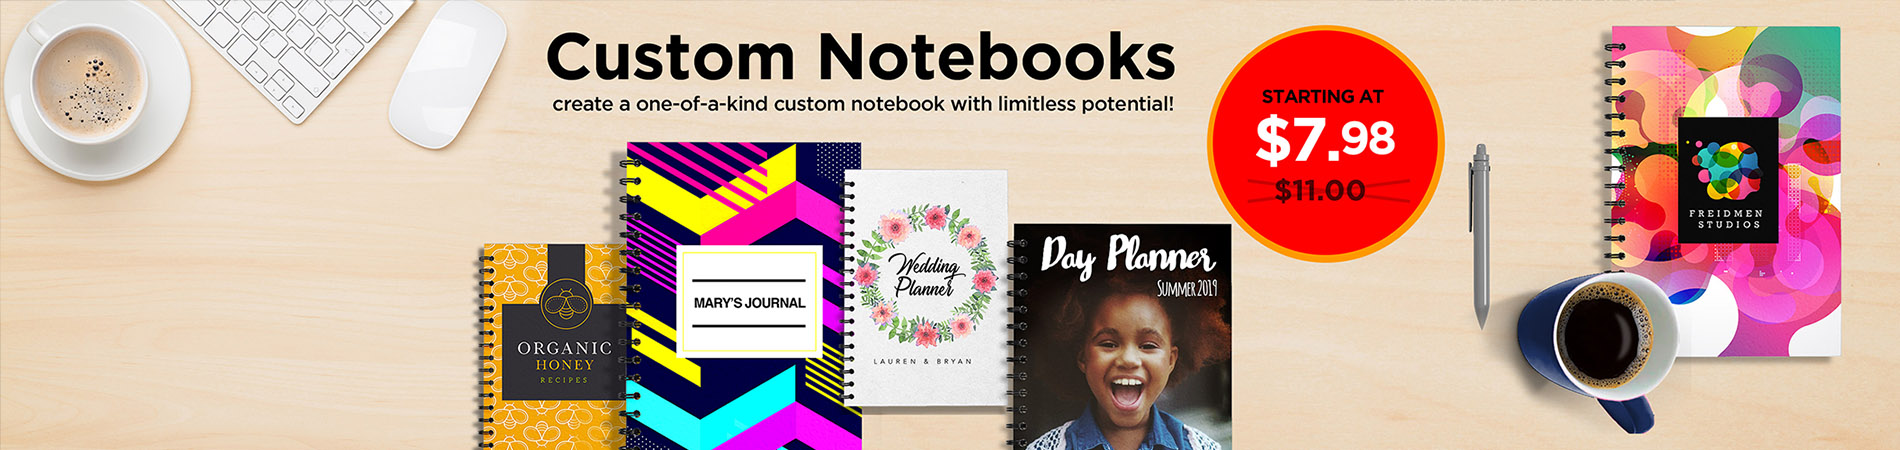 Custom Notebooks- $7.98